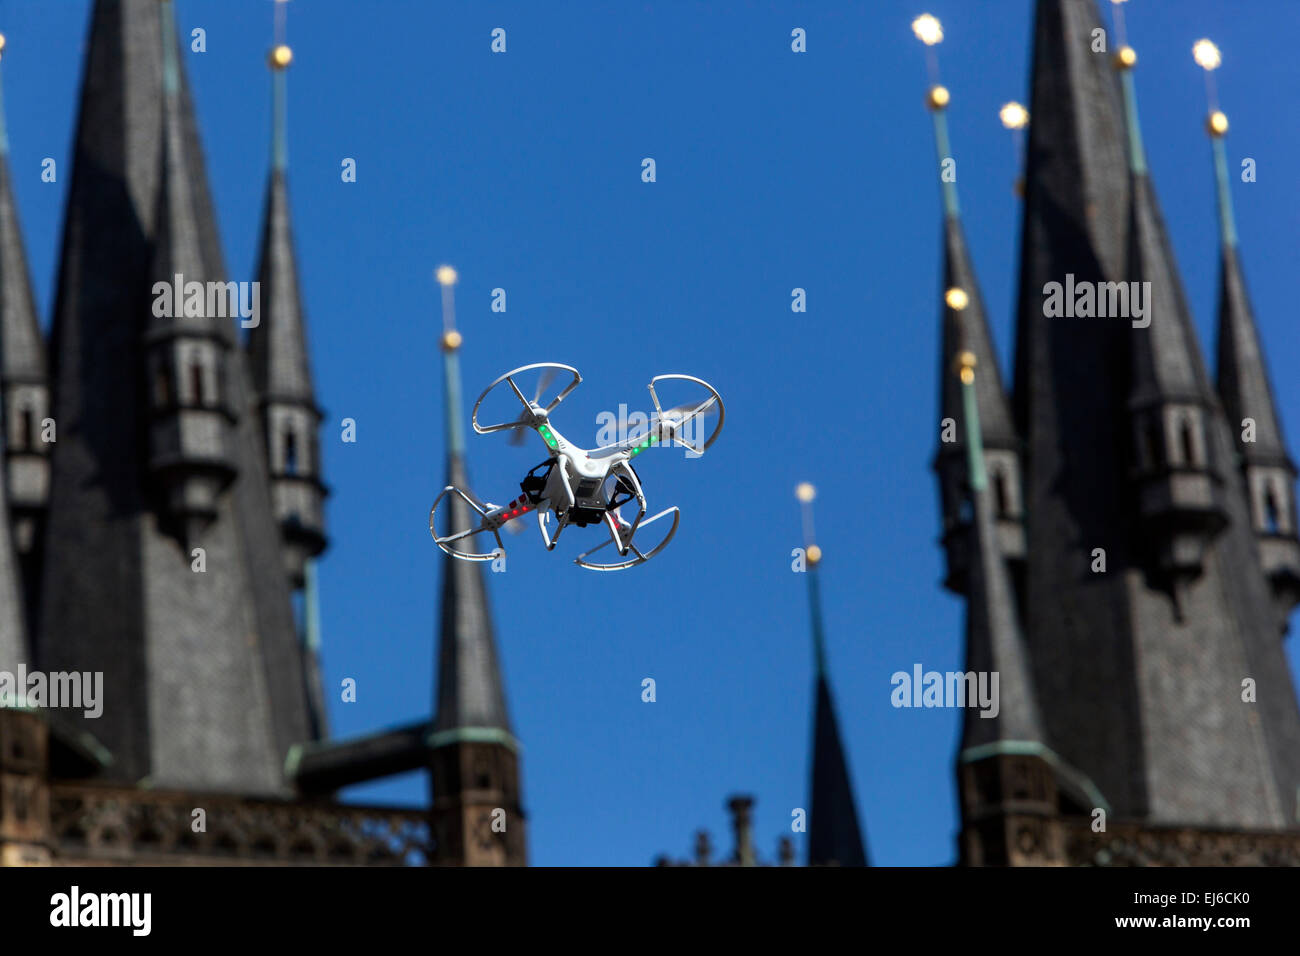 Drone Old Town Square, Tyn Church spire, Prague Czech Republic Europe - Stock Image